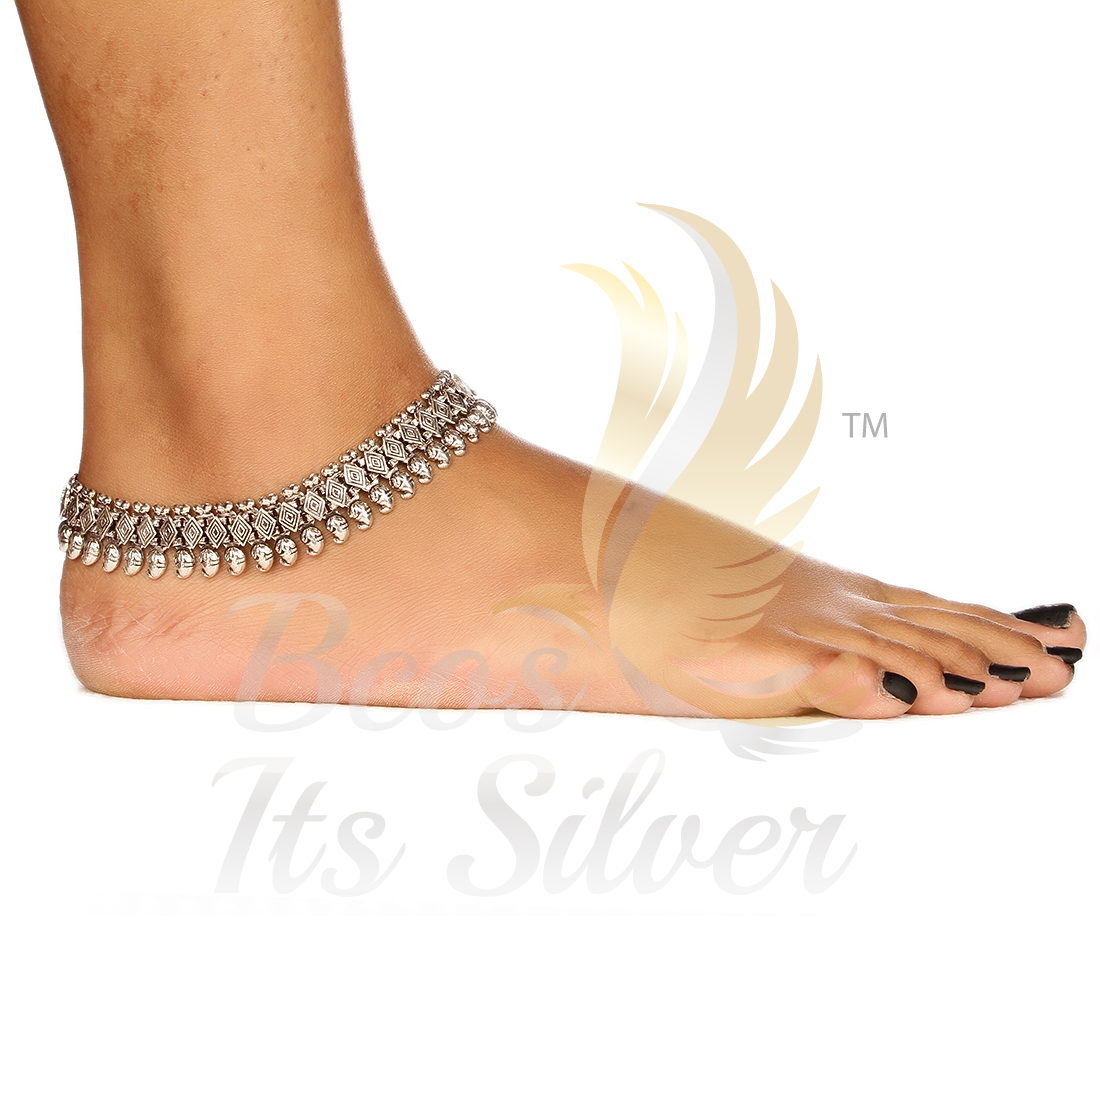 how to clean anklet at home